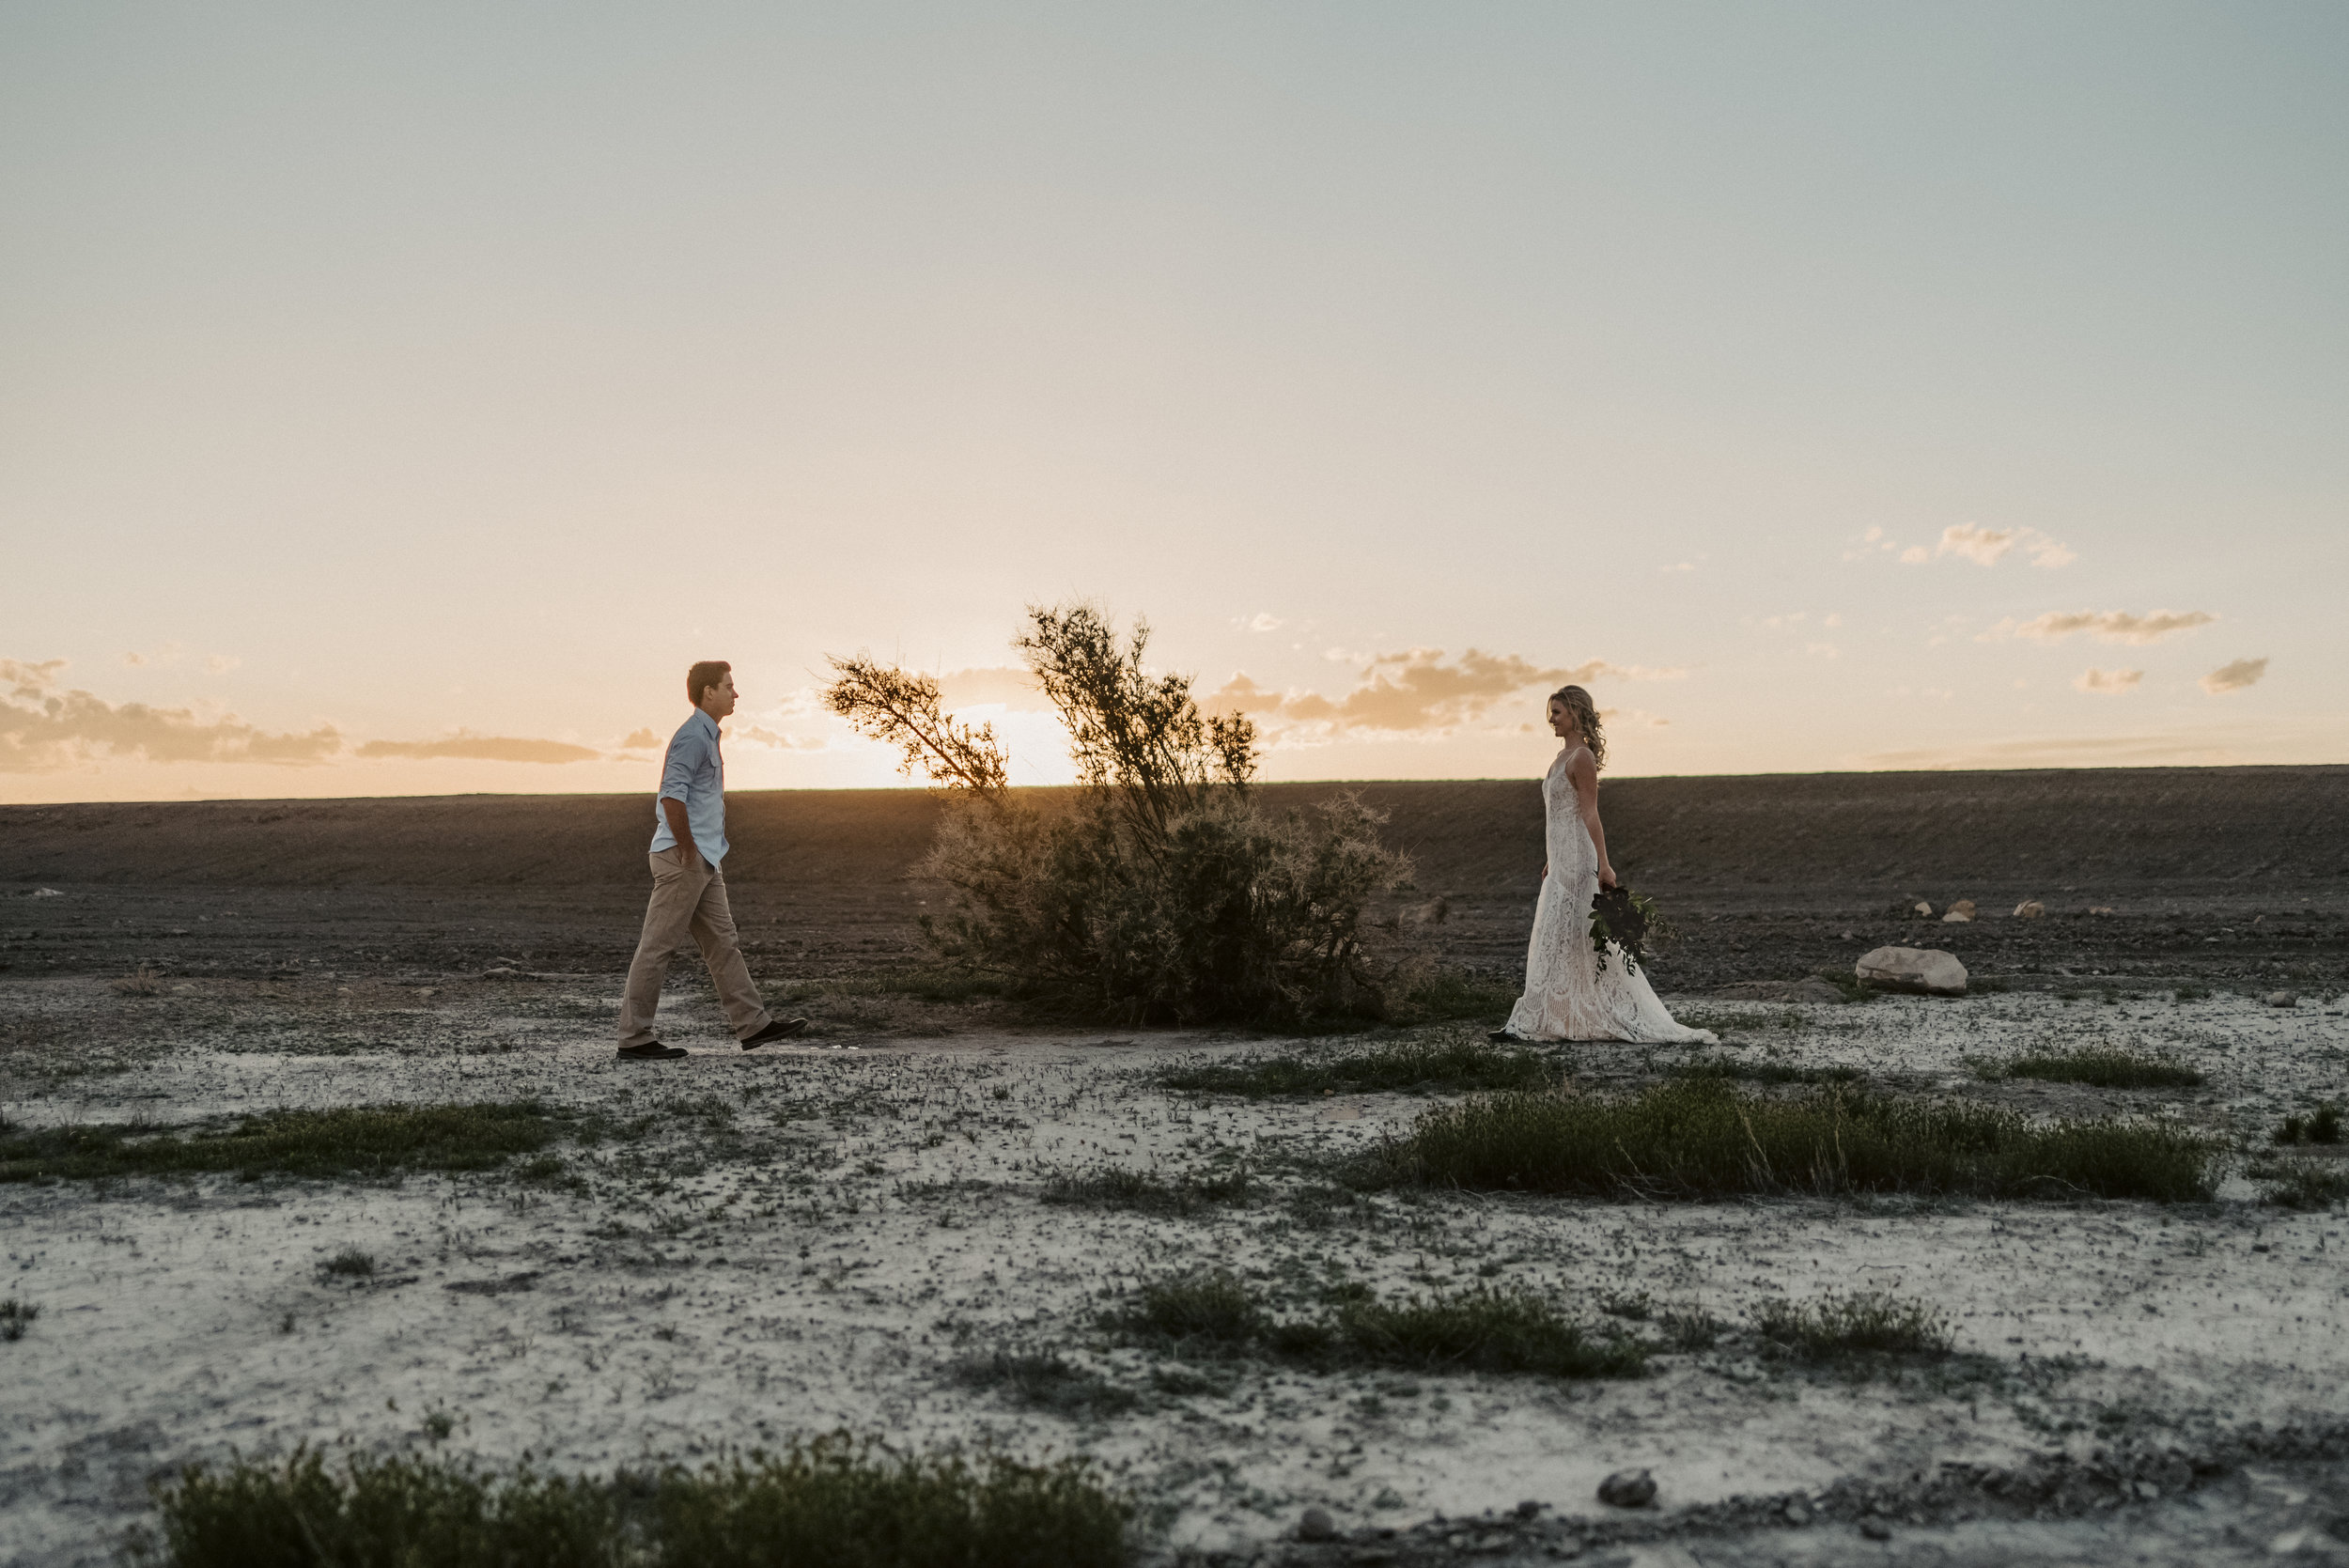 breelle_hilsenrath_photography_new_mexico_elopement.jpg